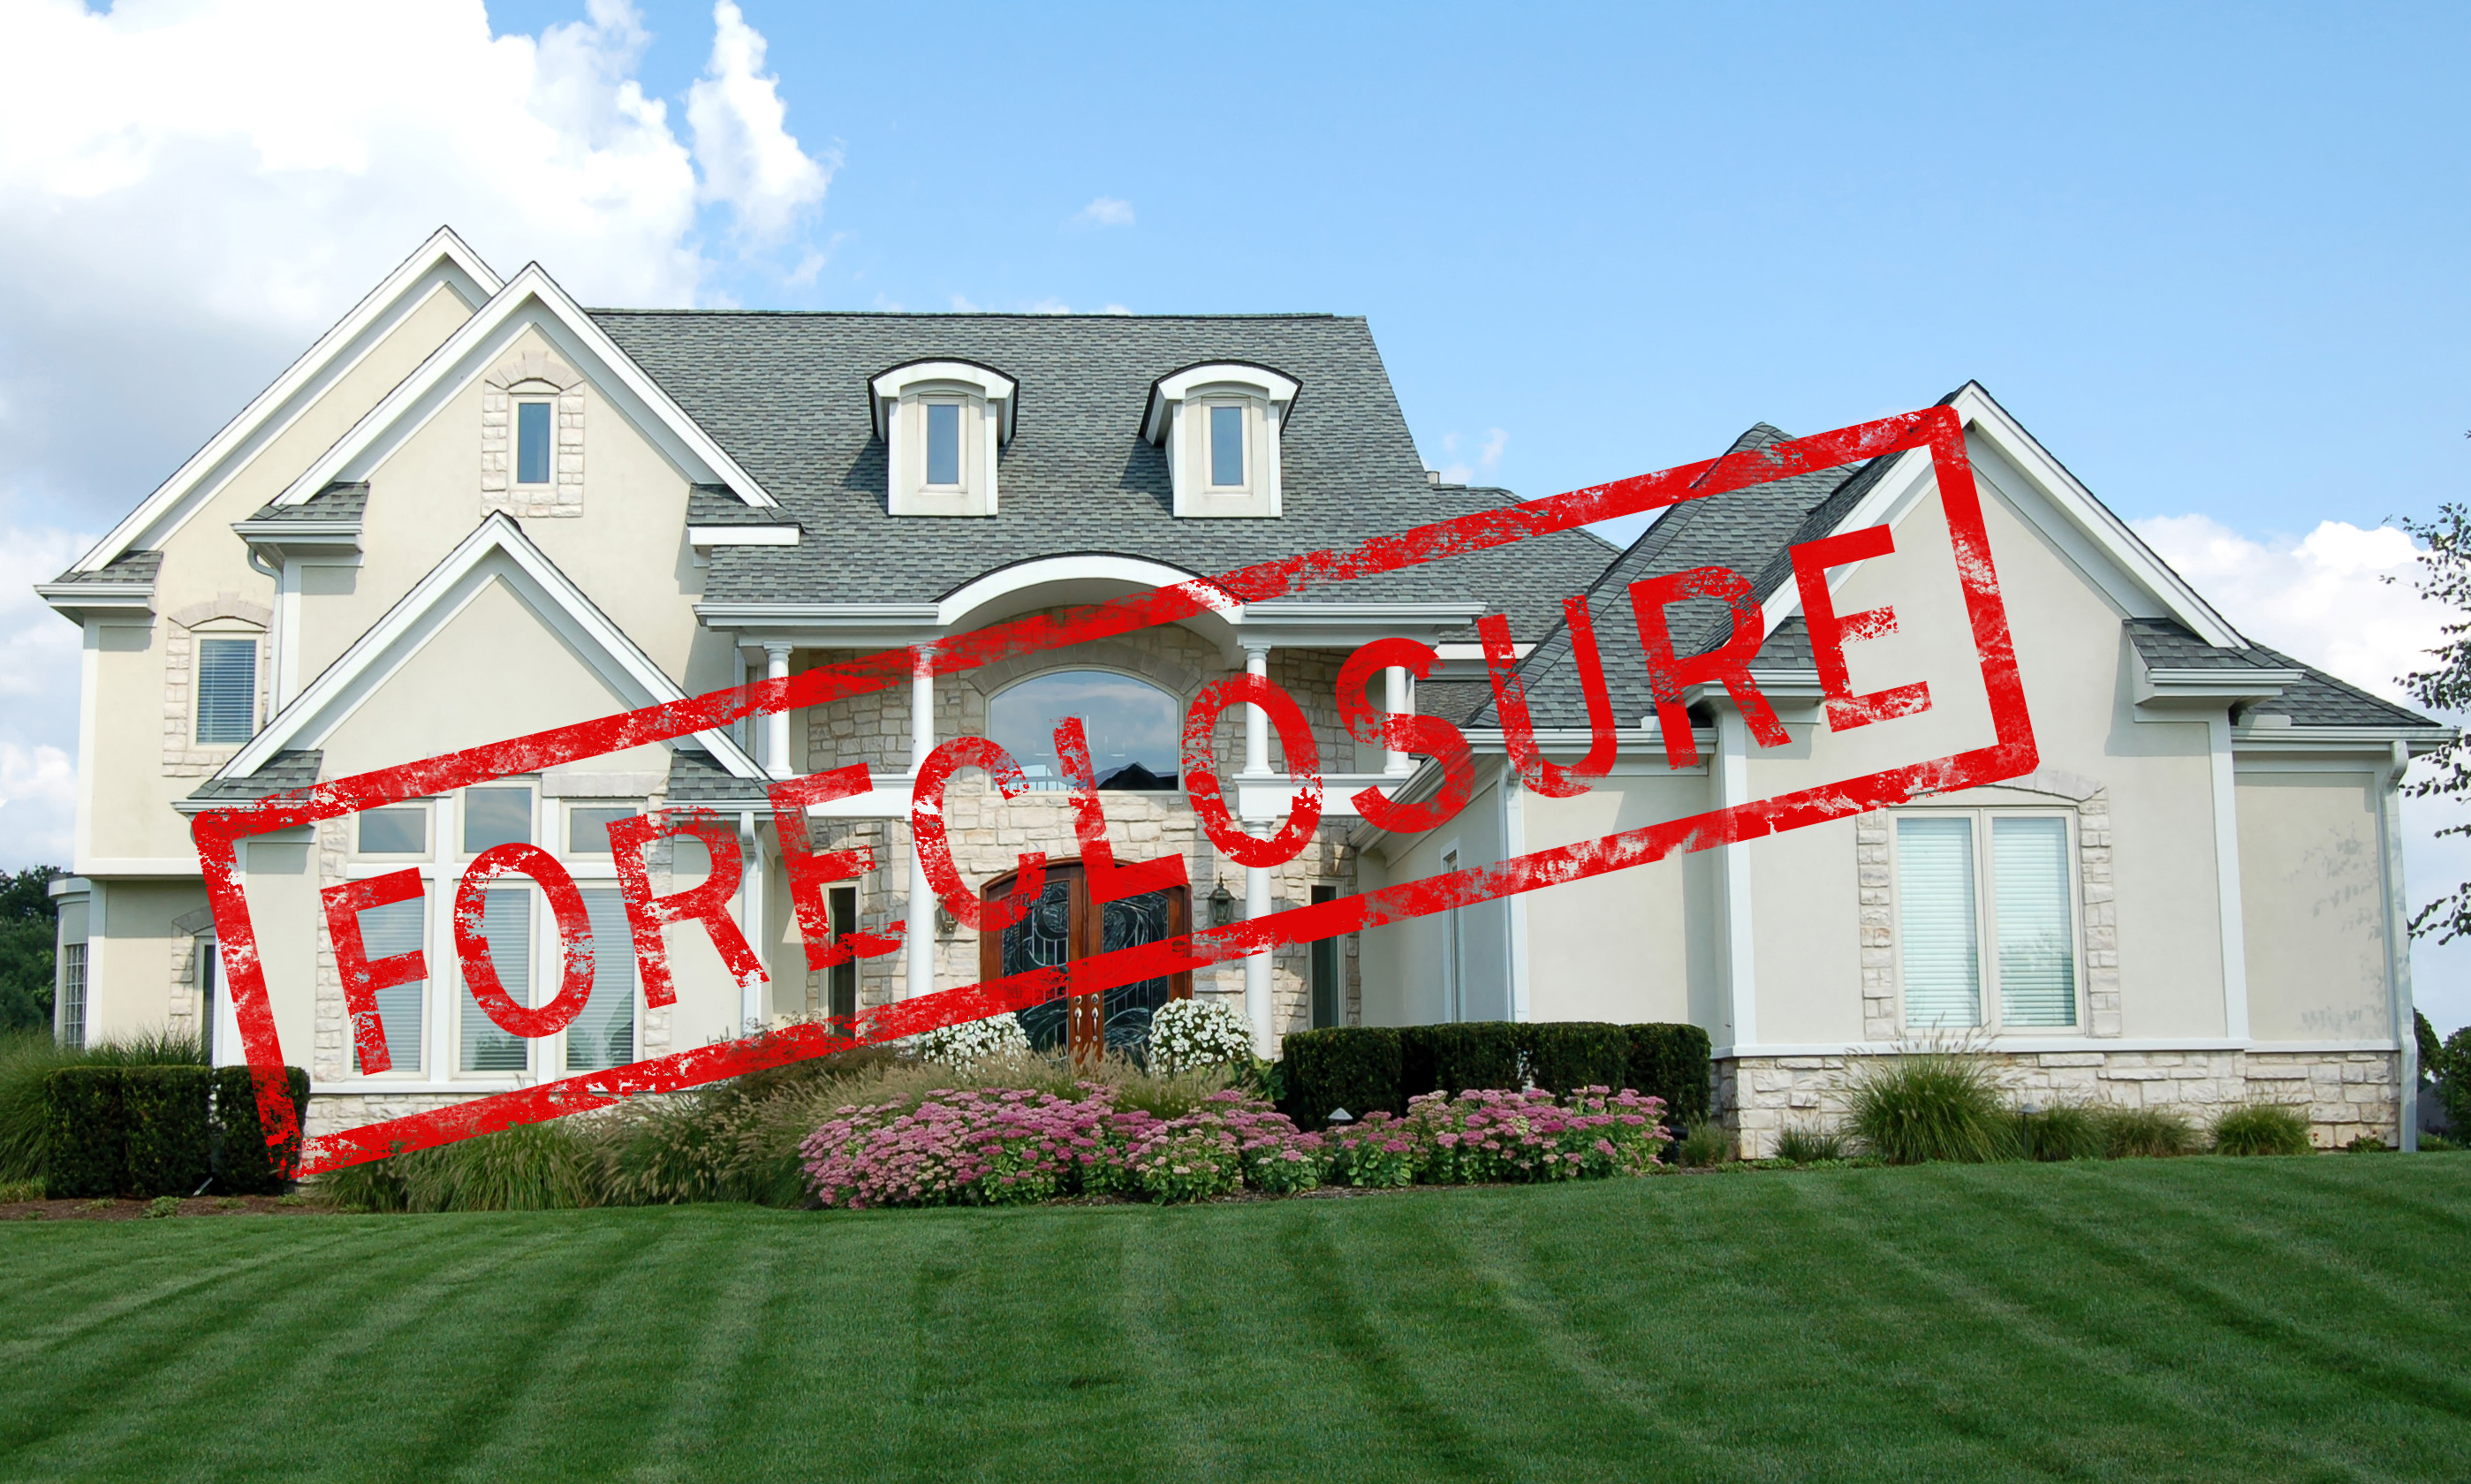 Call Property Valuation Group when you need valuations regarding Oakland foreclosures